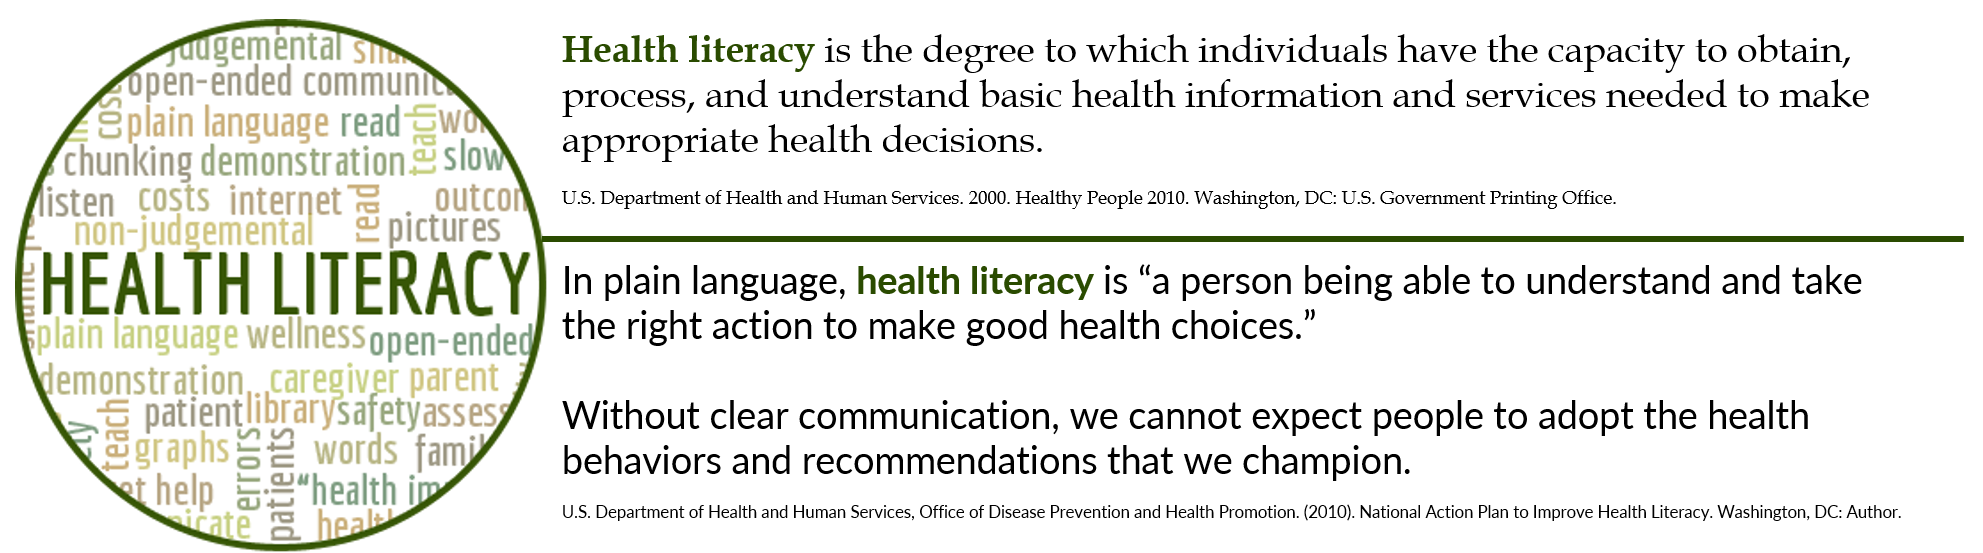 "In plain language, health literacy is ""a person being able to understand and take the right action to make good health choices."""